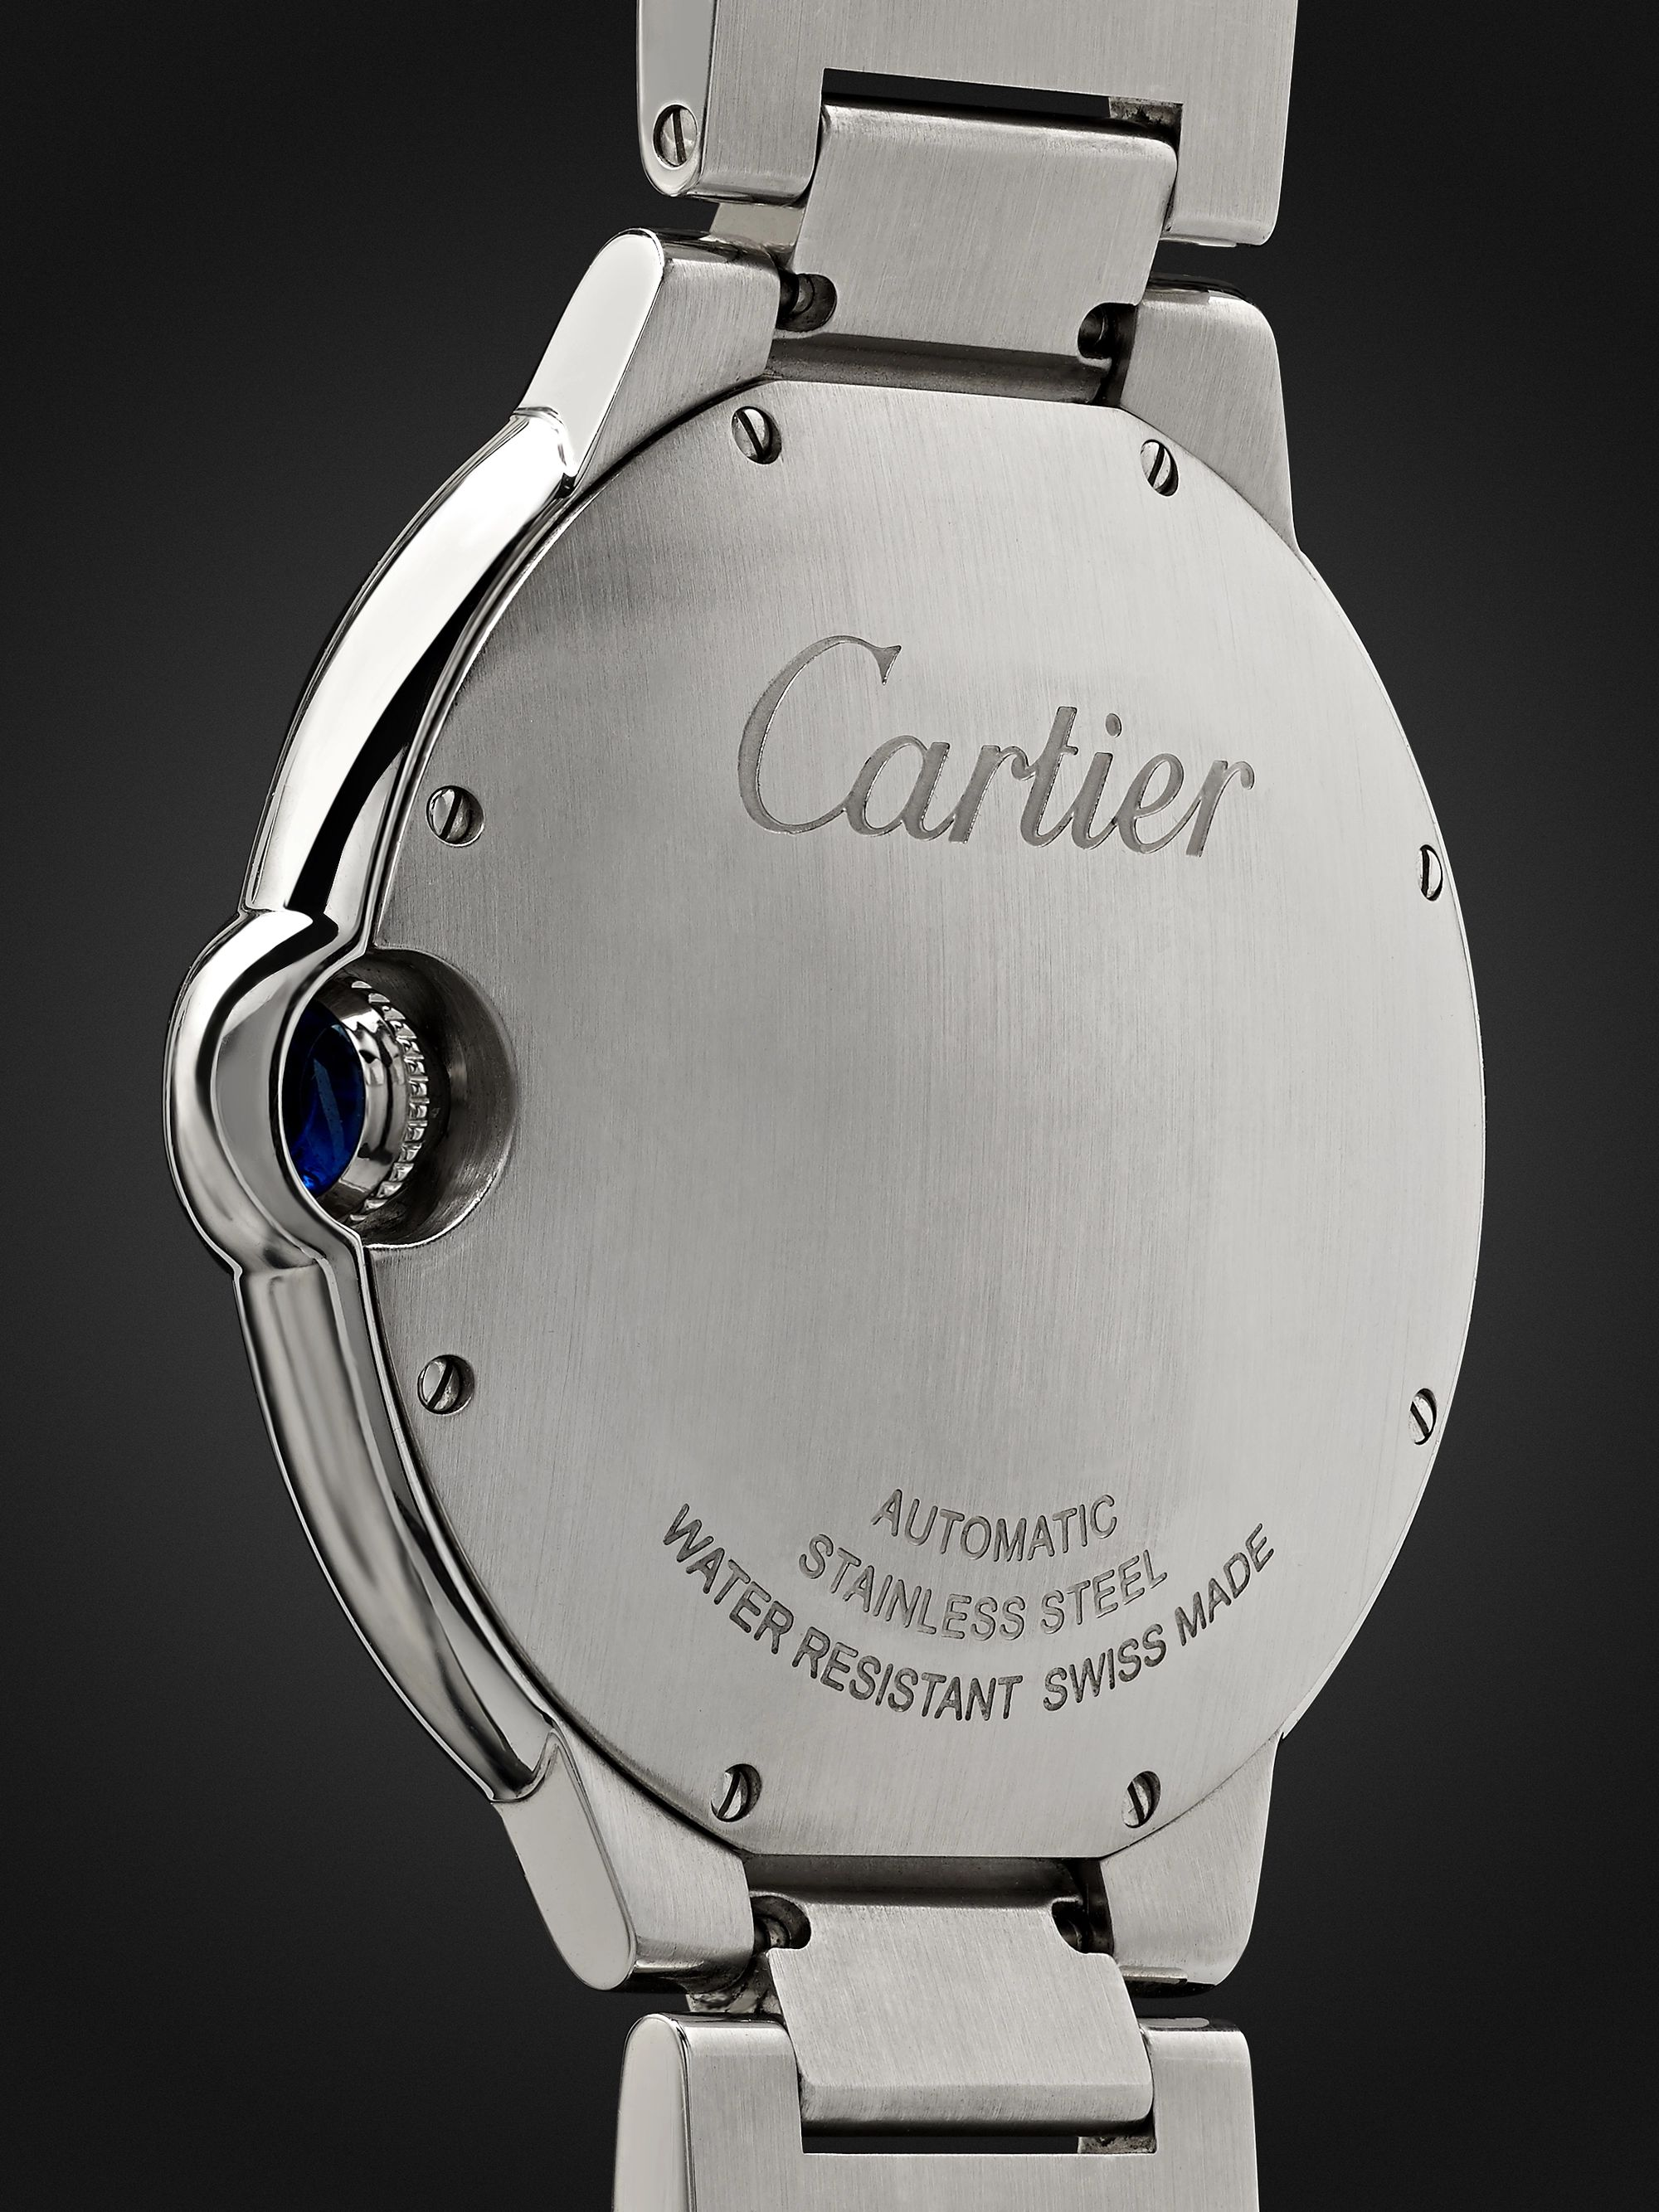 CARTIER Ballon Bleu de Cartier Automatic 42mm Stainless Steel Watch, Ref. No. CRW69012Z4